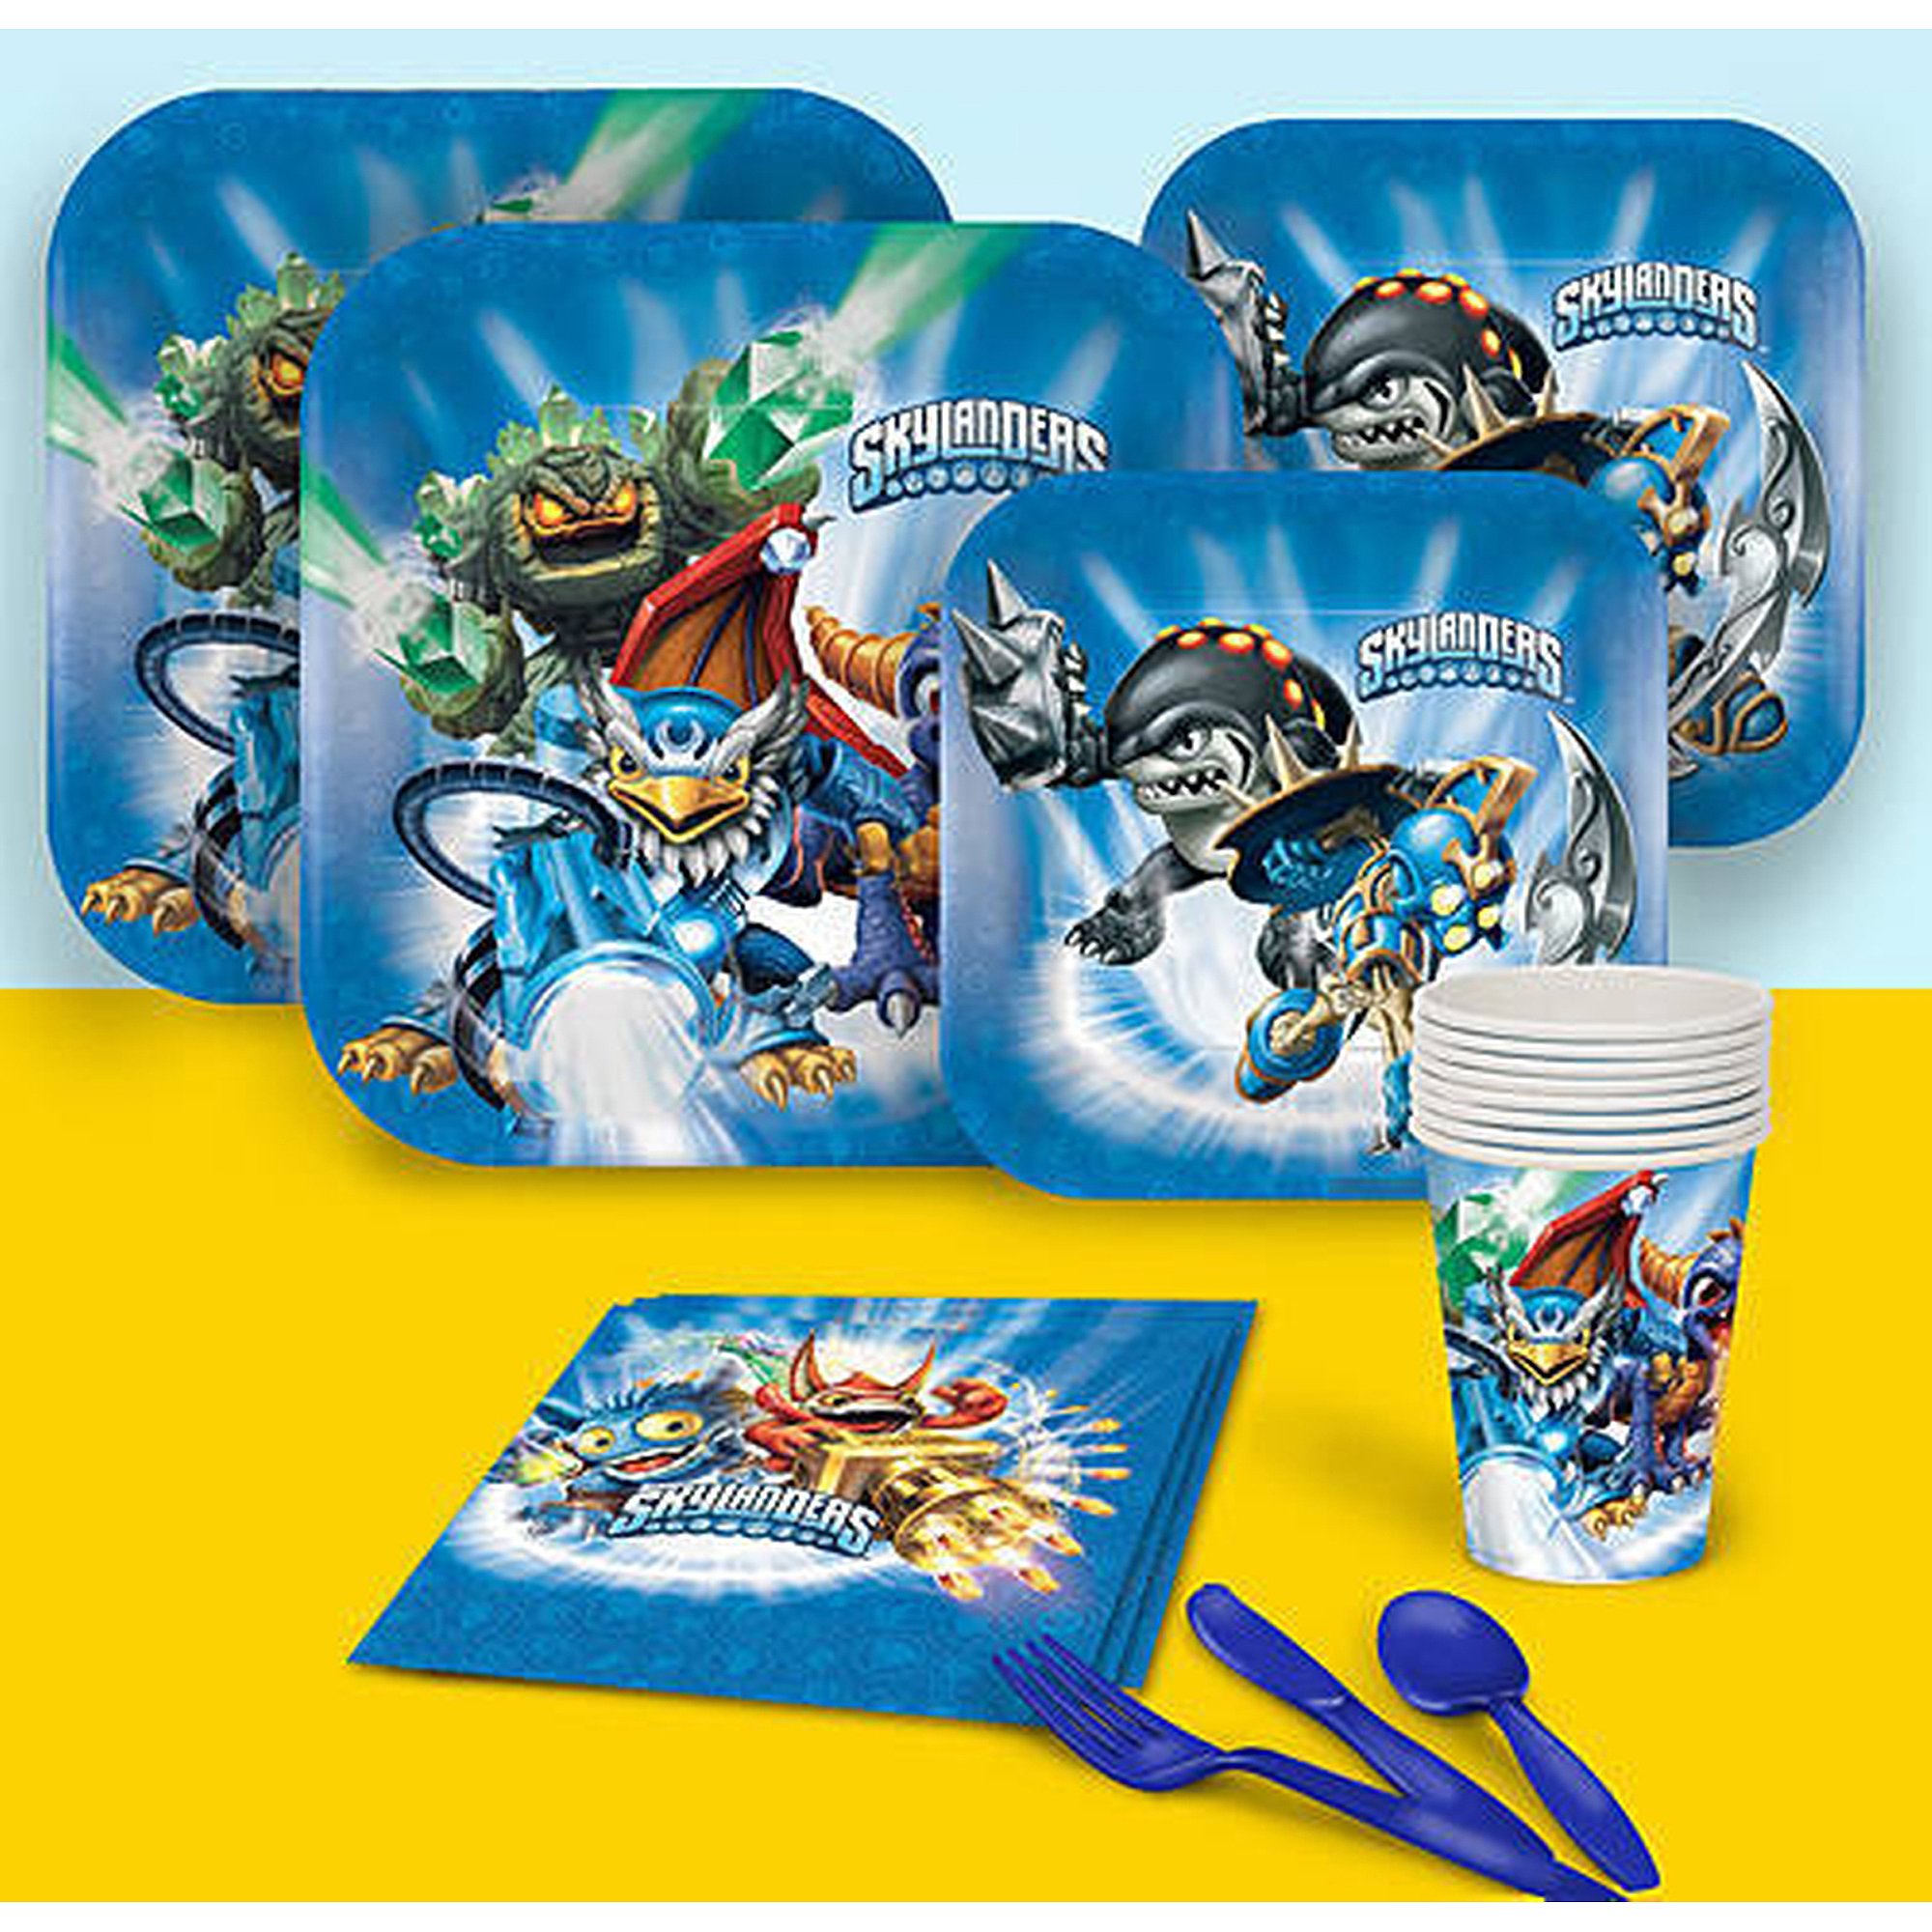 Skylanders Basic Party Pack K1 BL 737